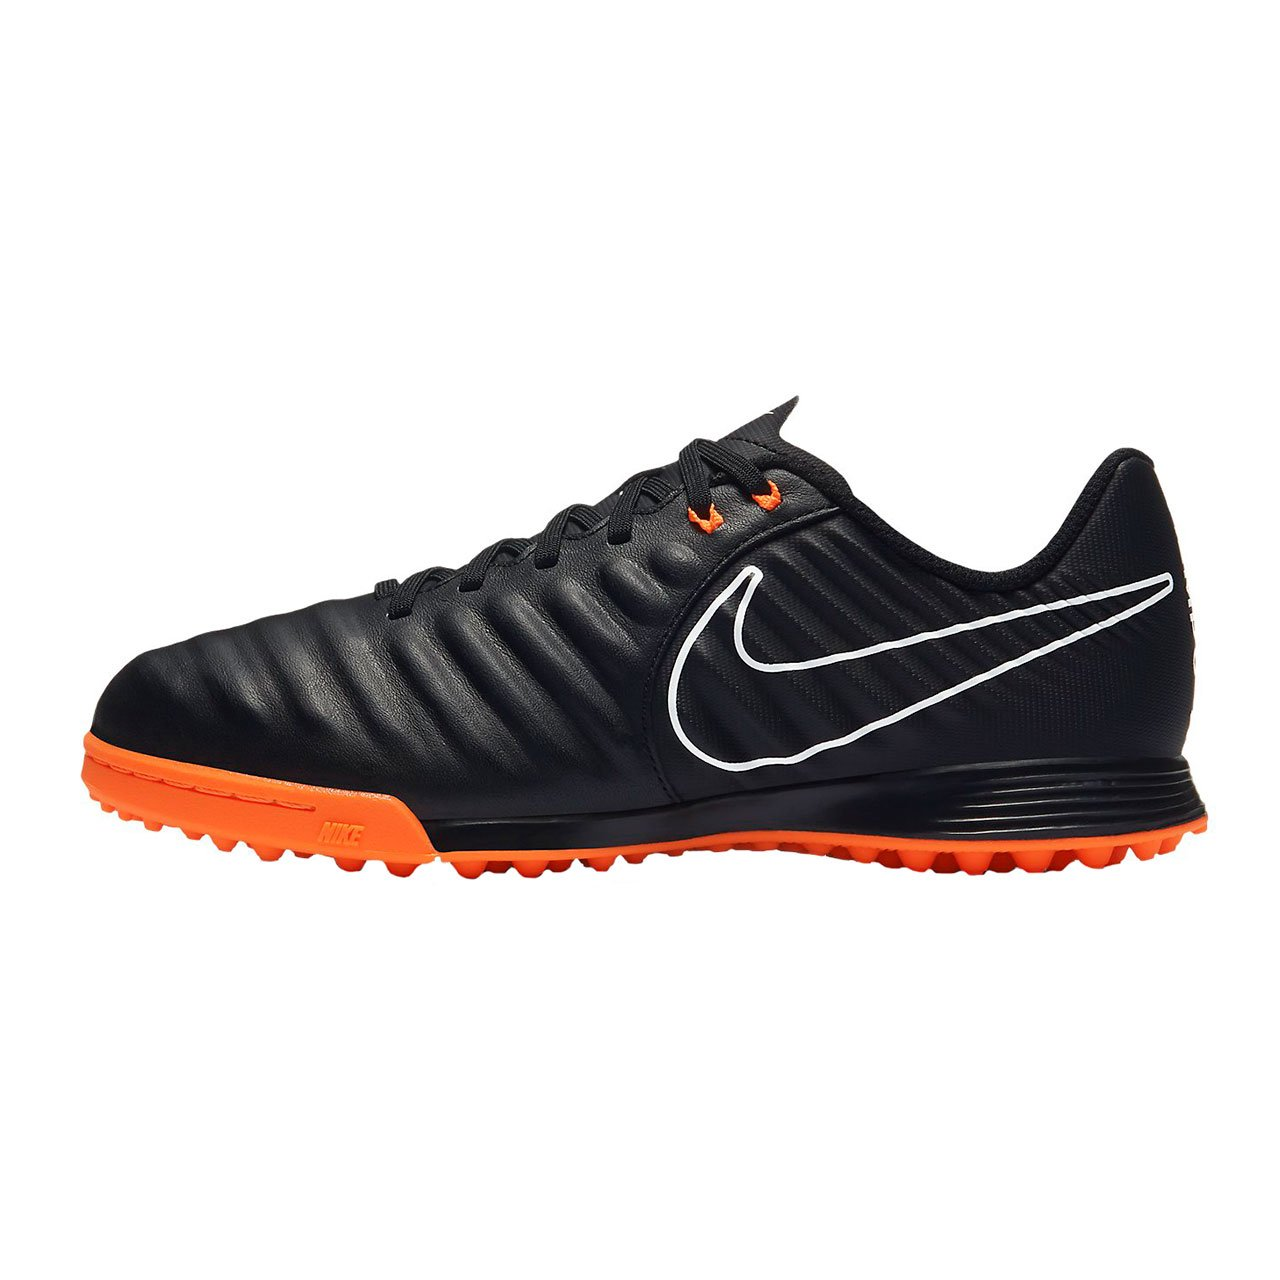 Nike Unisex-Kinder Jr Legendx 7 Academy TF Fitnessschuhe Mehrfarbig (Black/Total Orange-b 080)